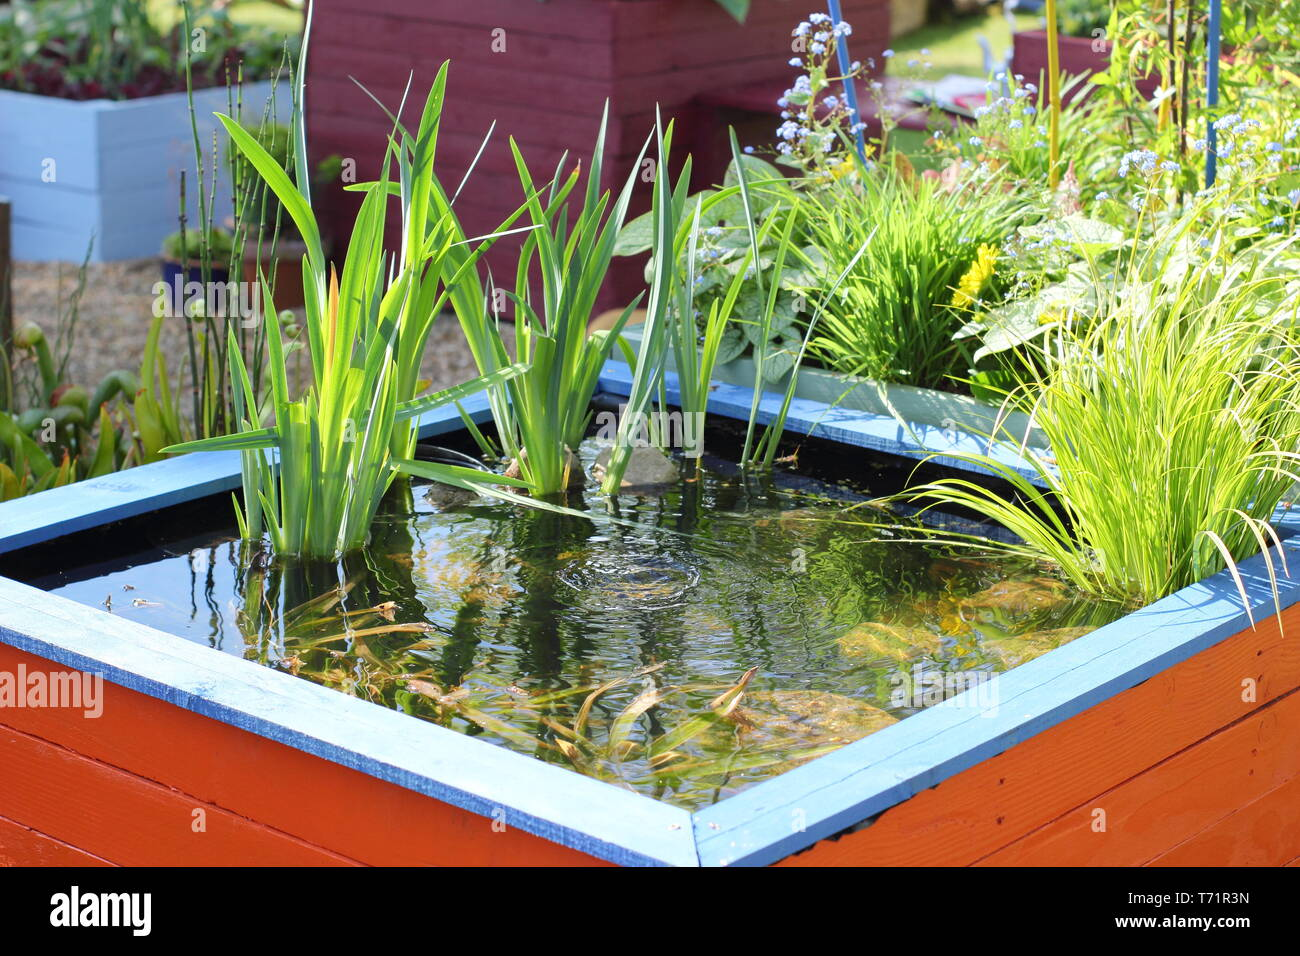 Swimming Pool Aus Paletten Raised Pond Garden Stock Photos Raised Pond Garden Stock Images